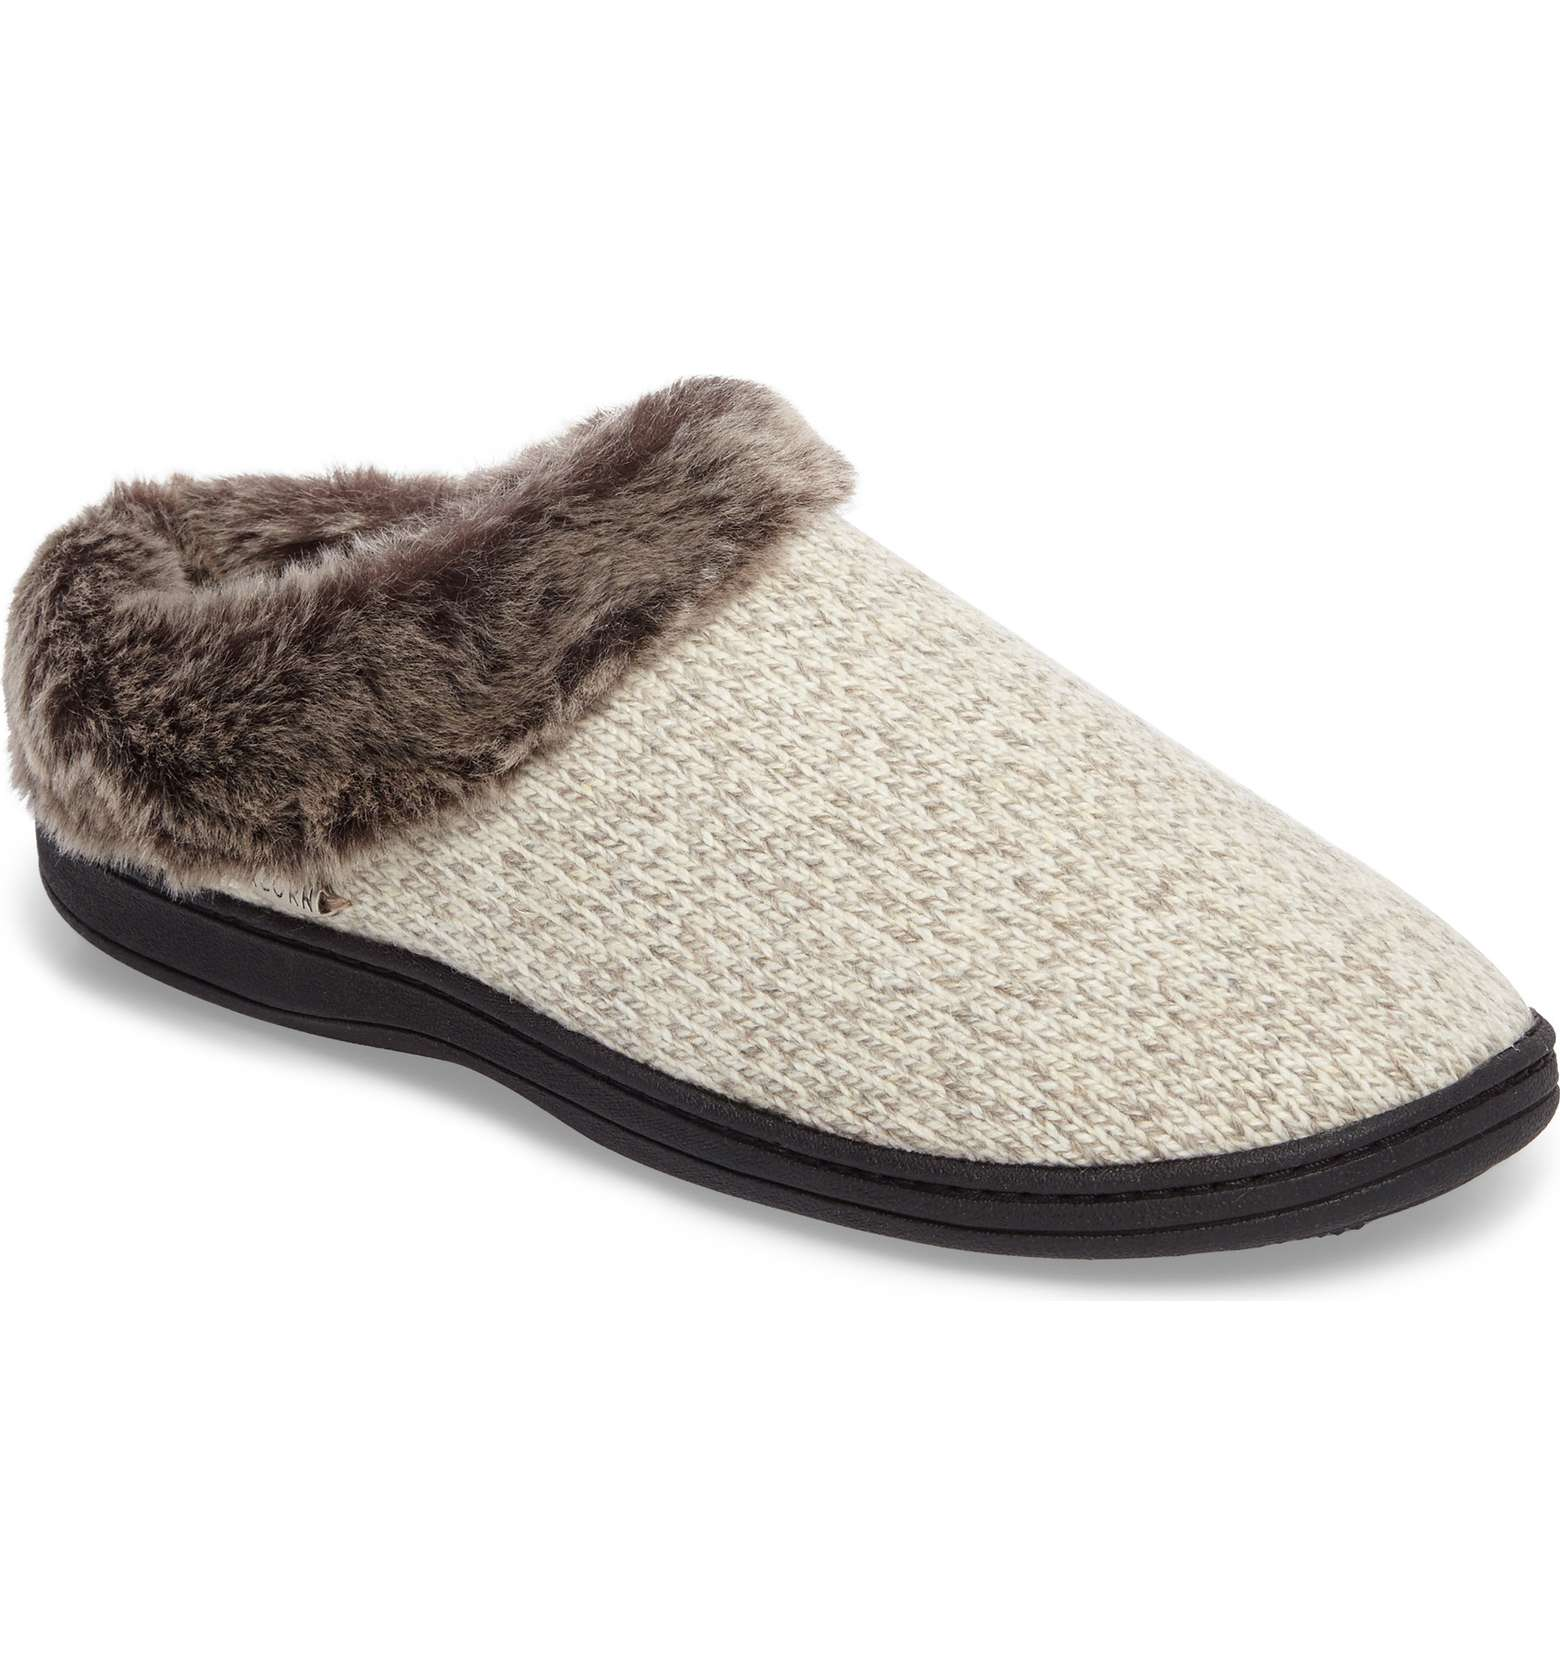 4. Slippers